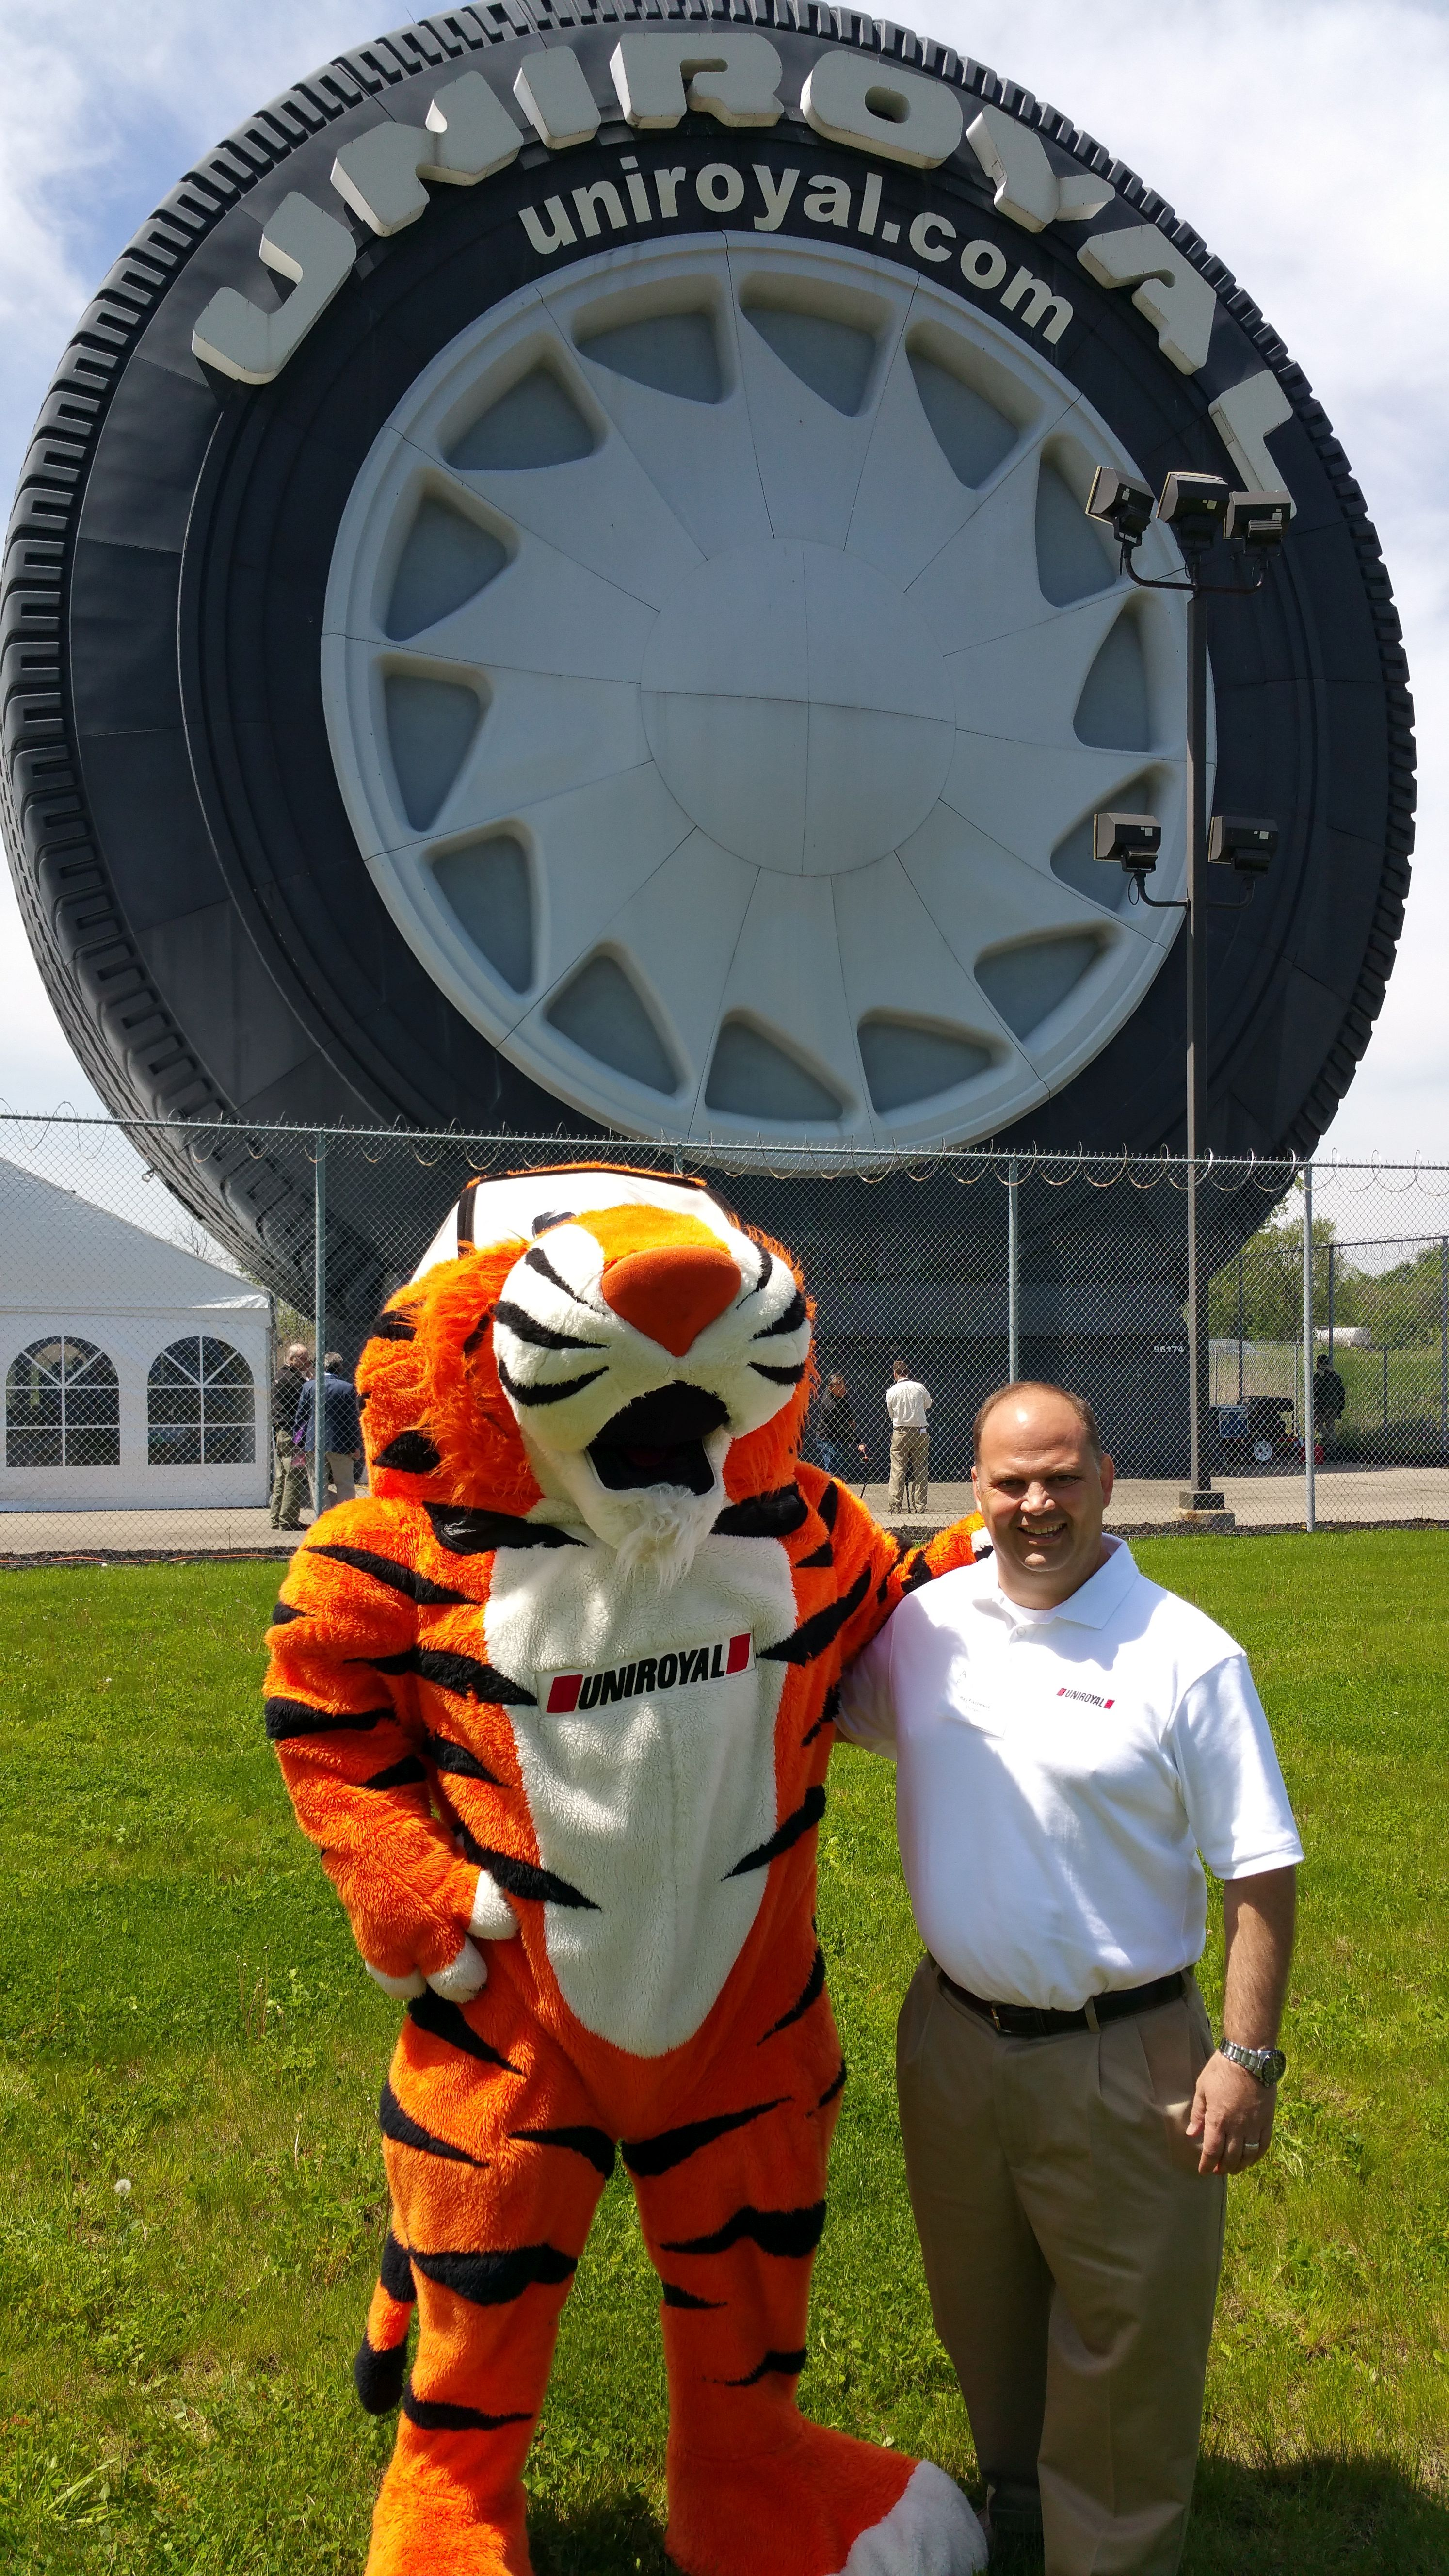 A landmark tire: The Uniroyal giant tire is 50